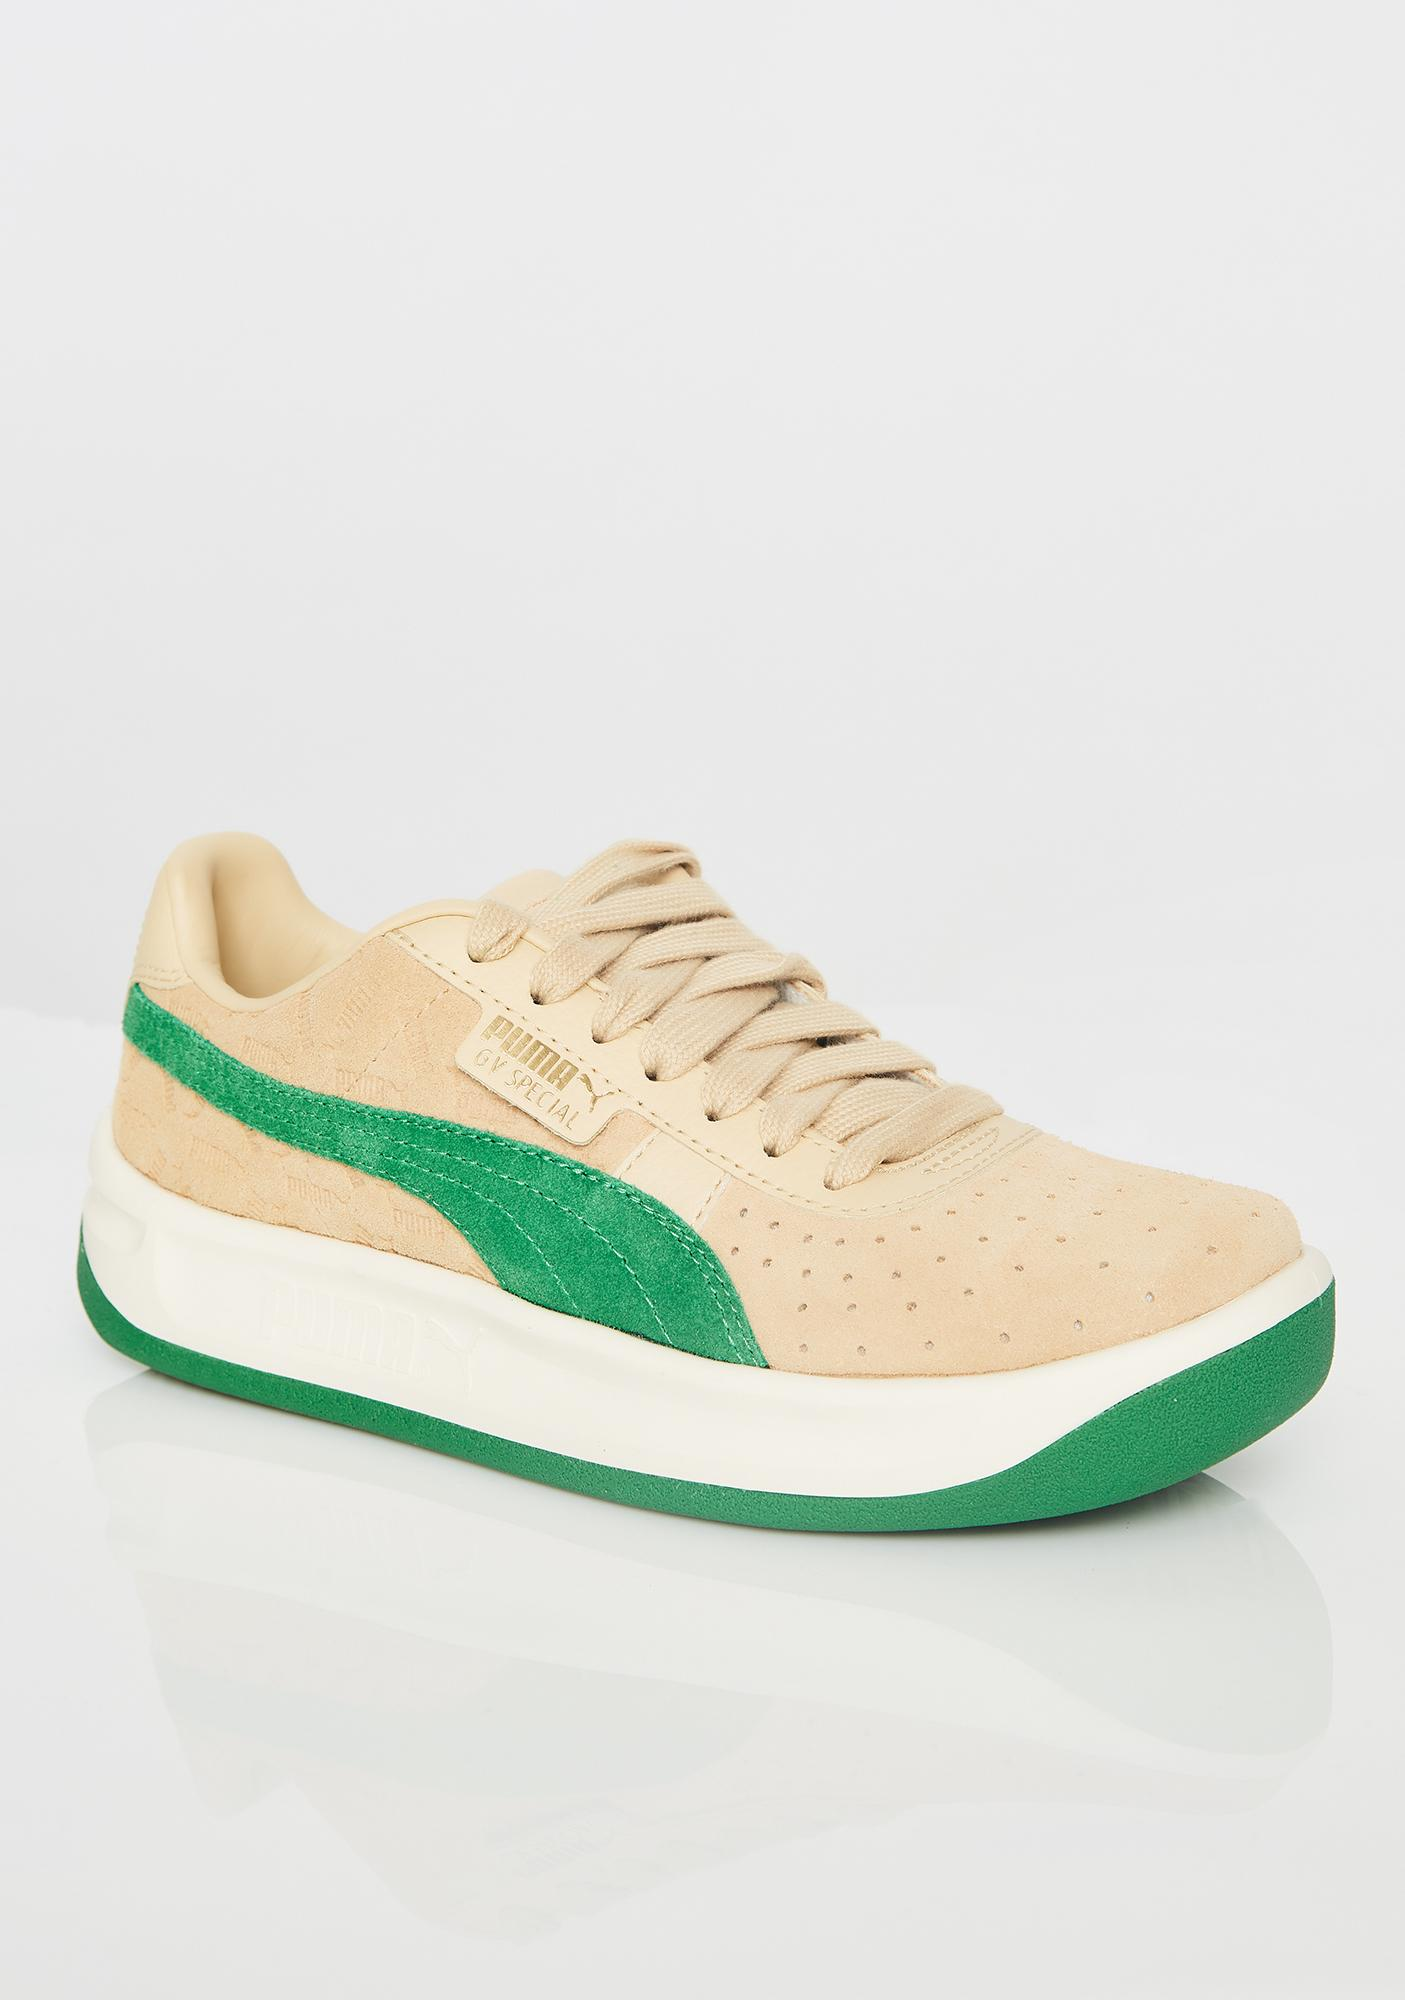 super popular f5dc5 a67c5 GV Special Lux Sneakers